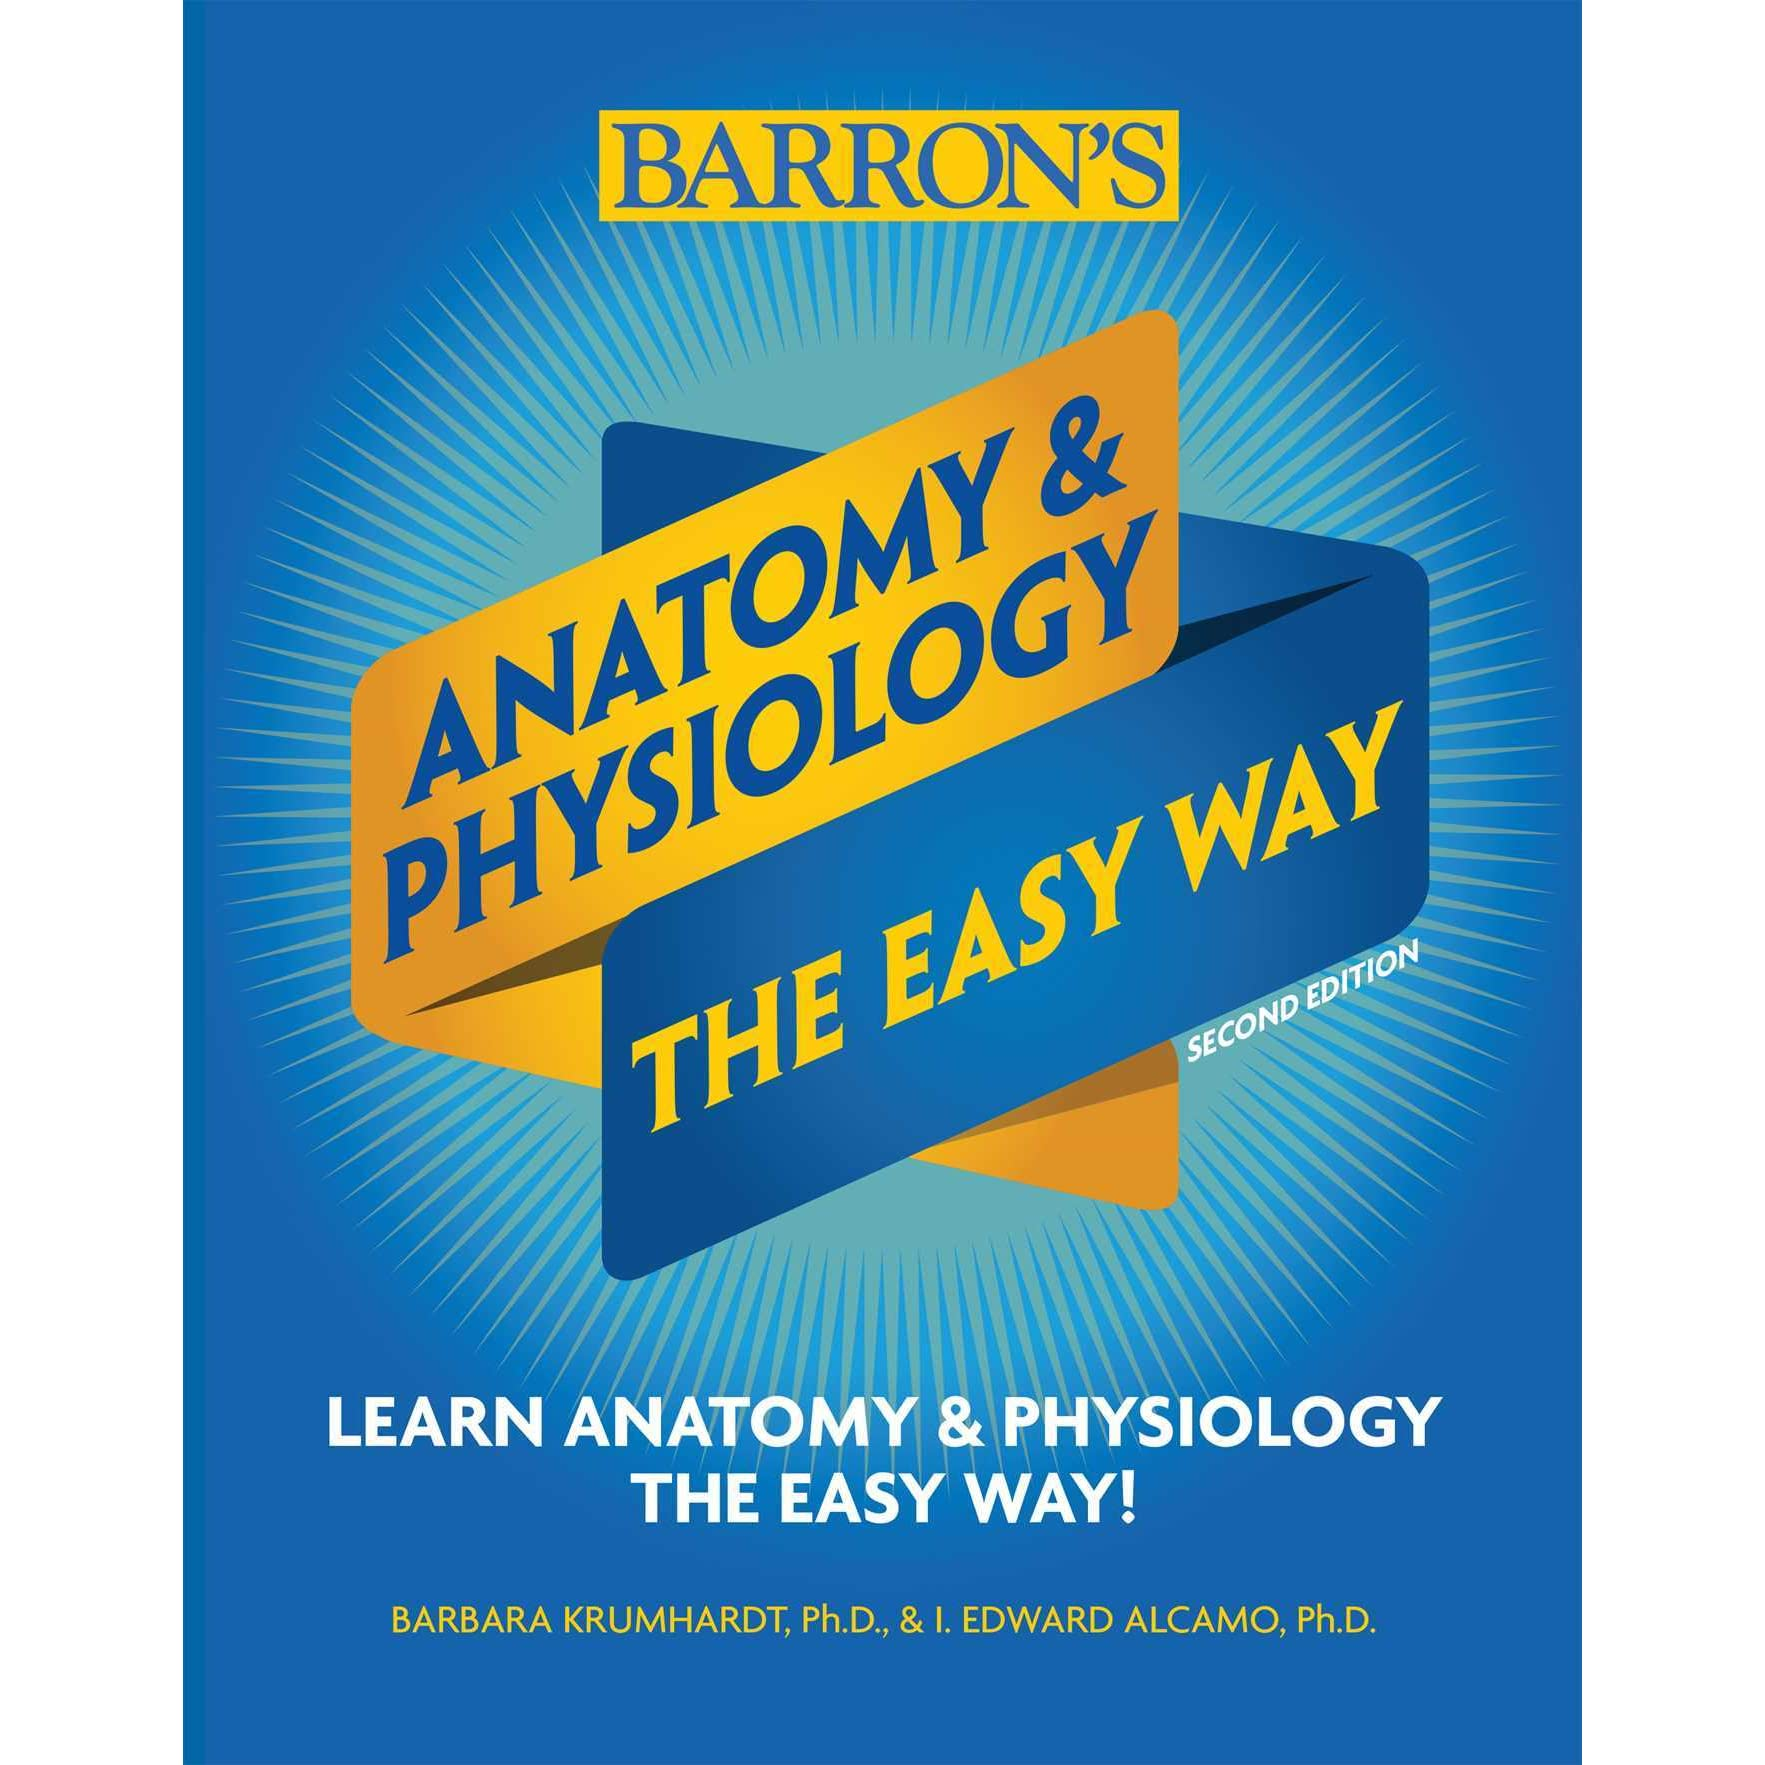 Anatomy And Physiology The Easy Way By Barrons